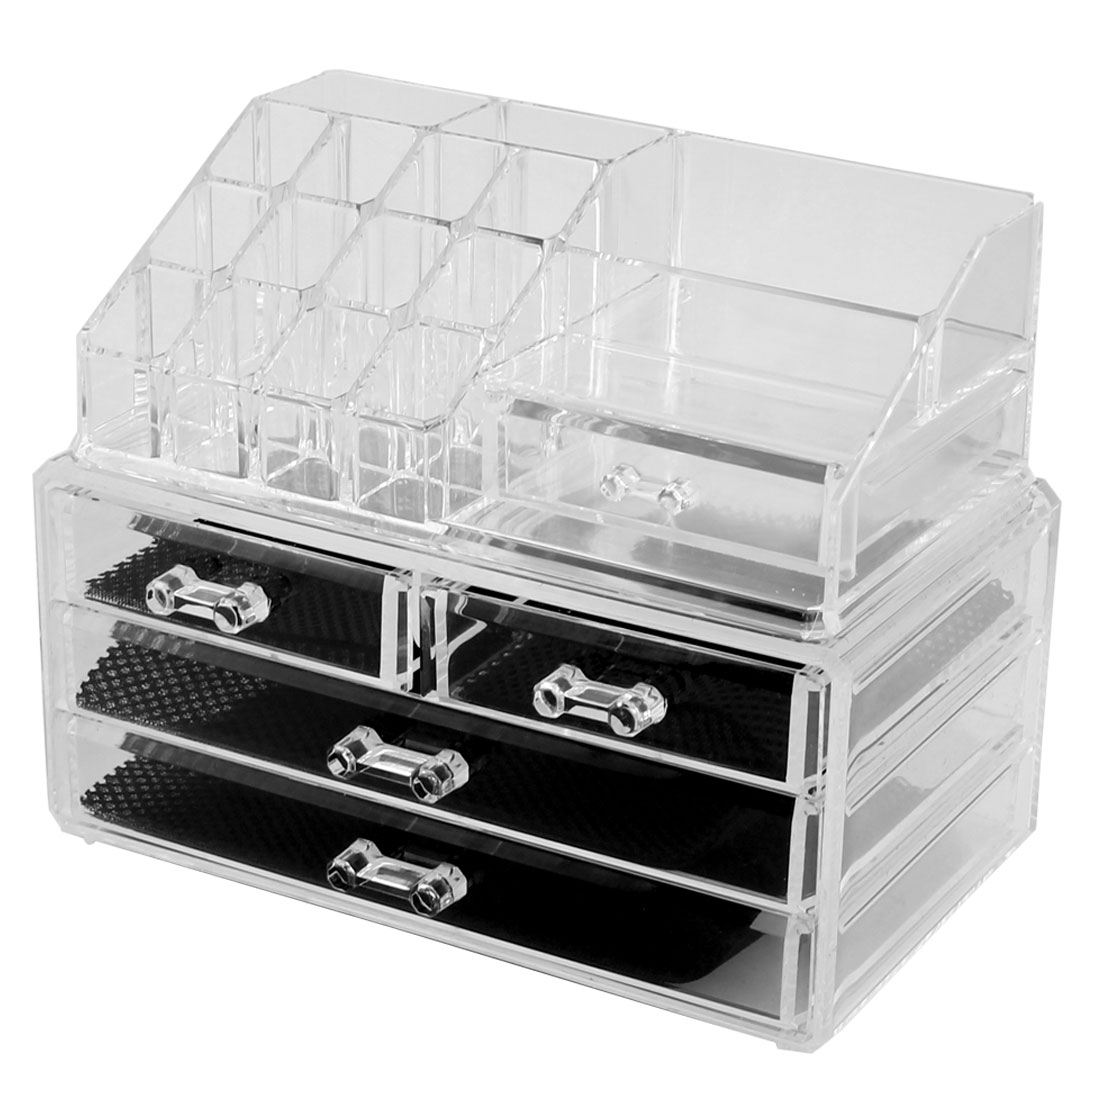 Home Acrylic Multilayers Jewelry Makeup Storage Organizer Display Box Set 2 in 1